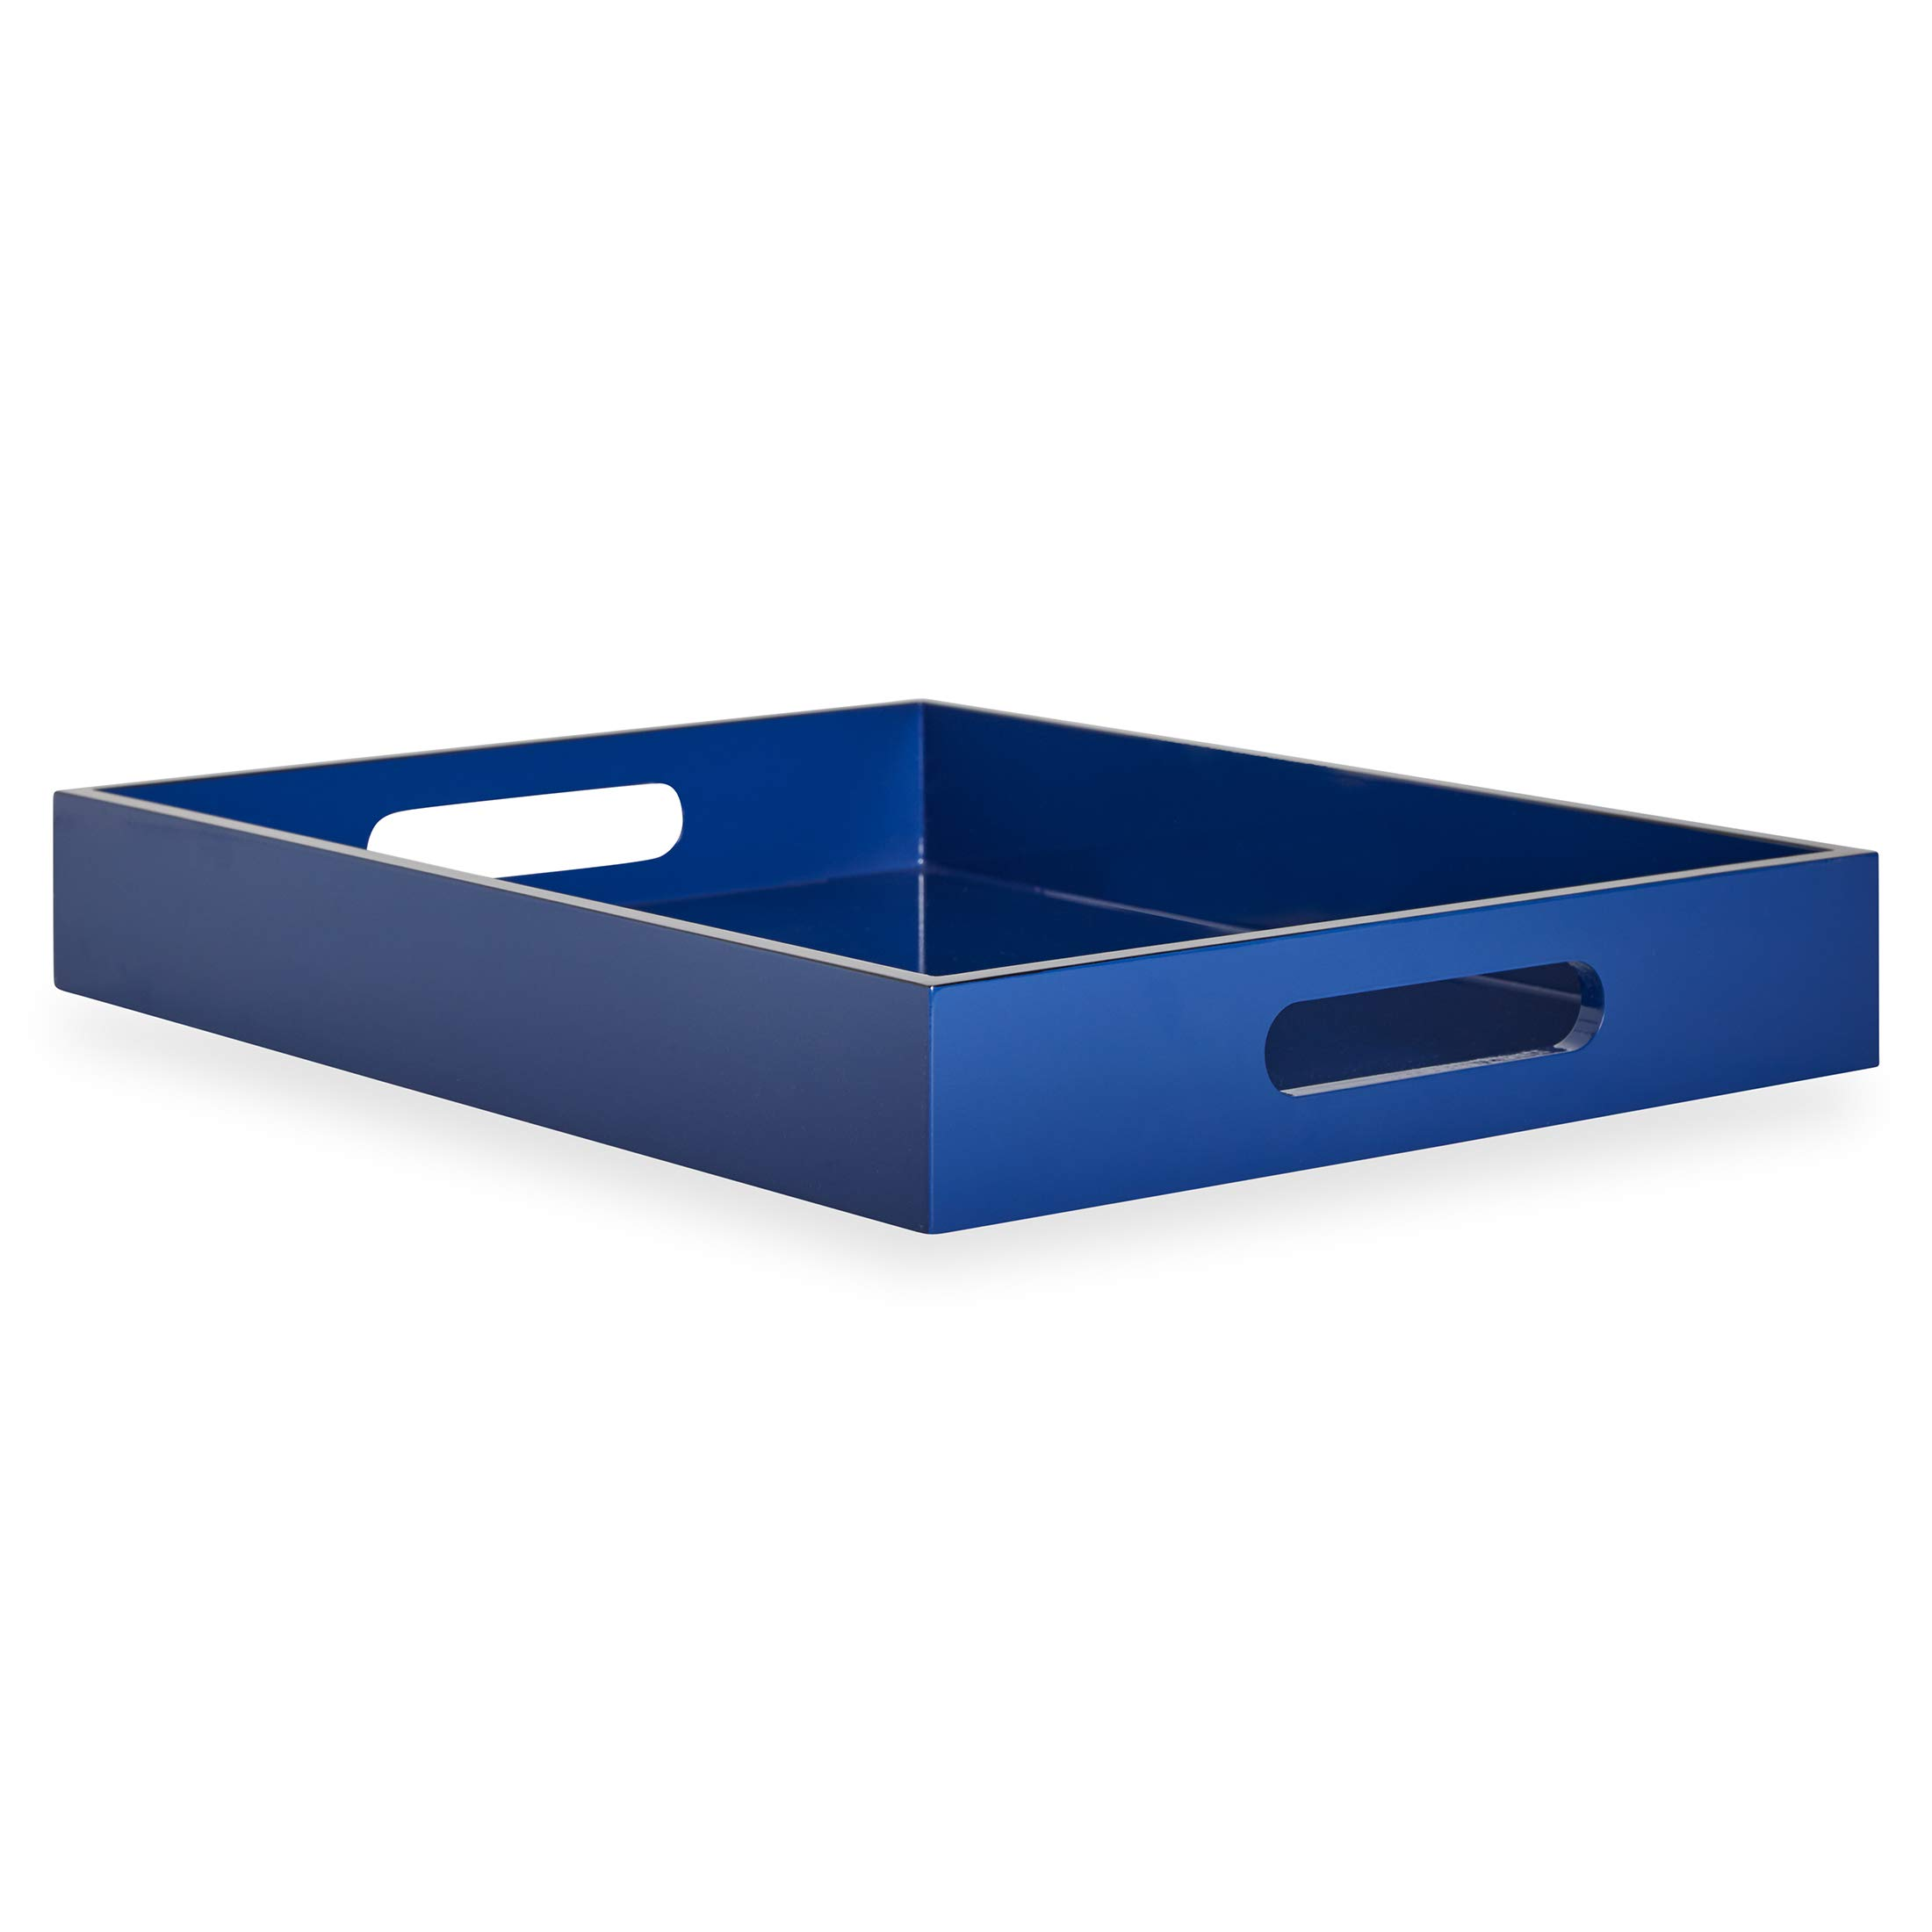 Now House by Jonathan Adler Chroma Lacquer Rectangular Tray, Blue